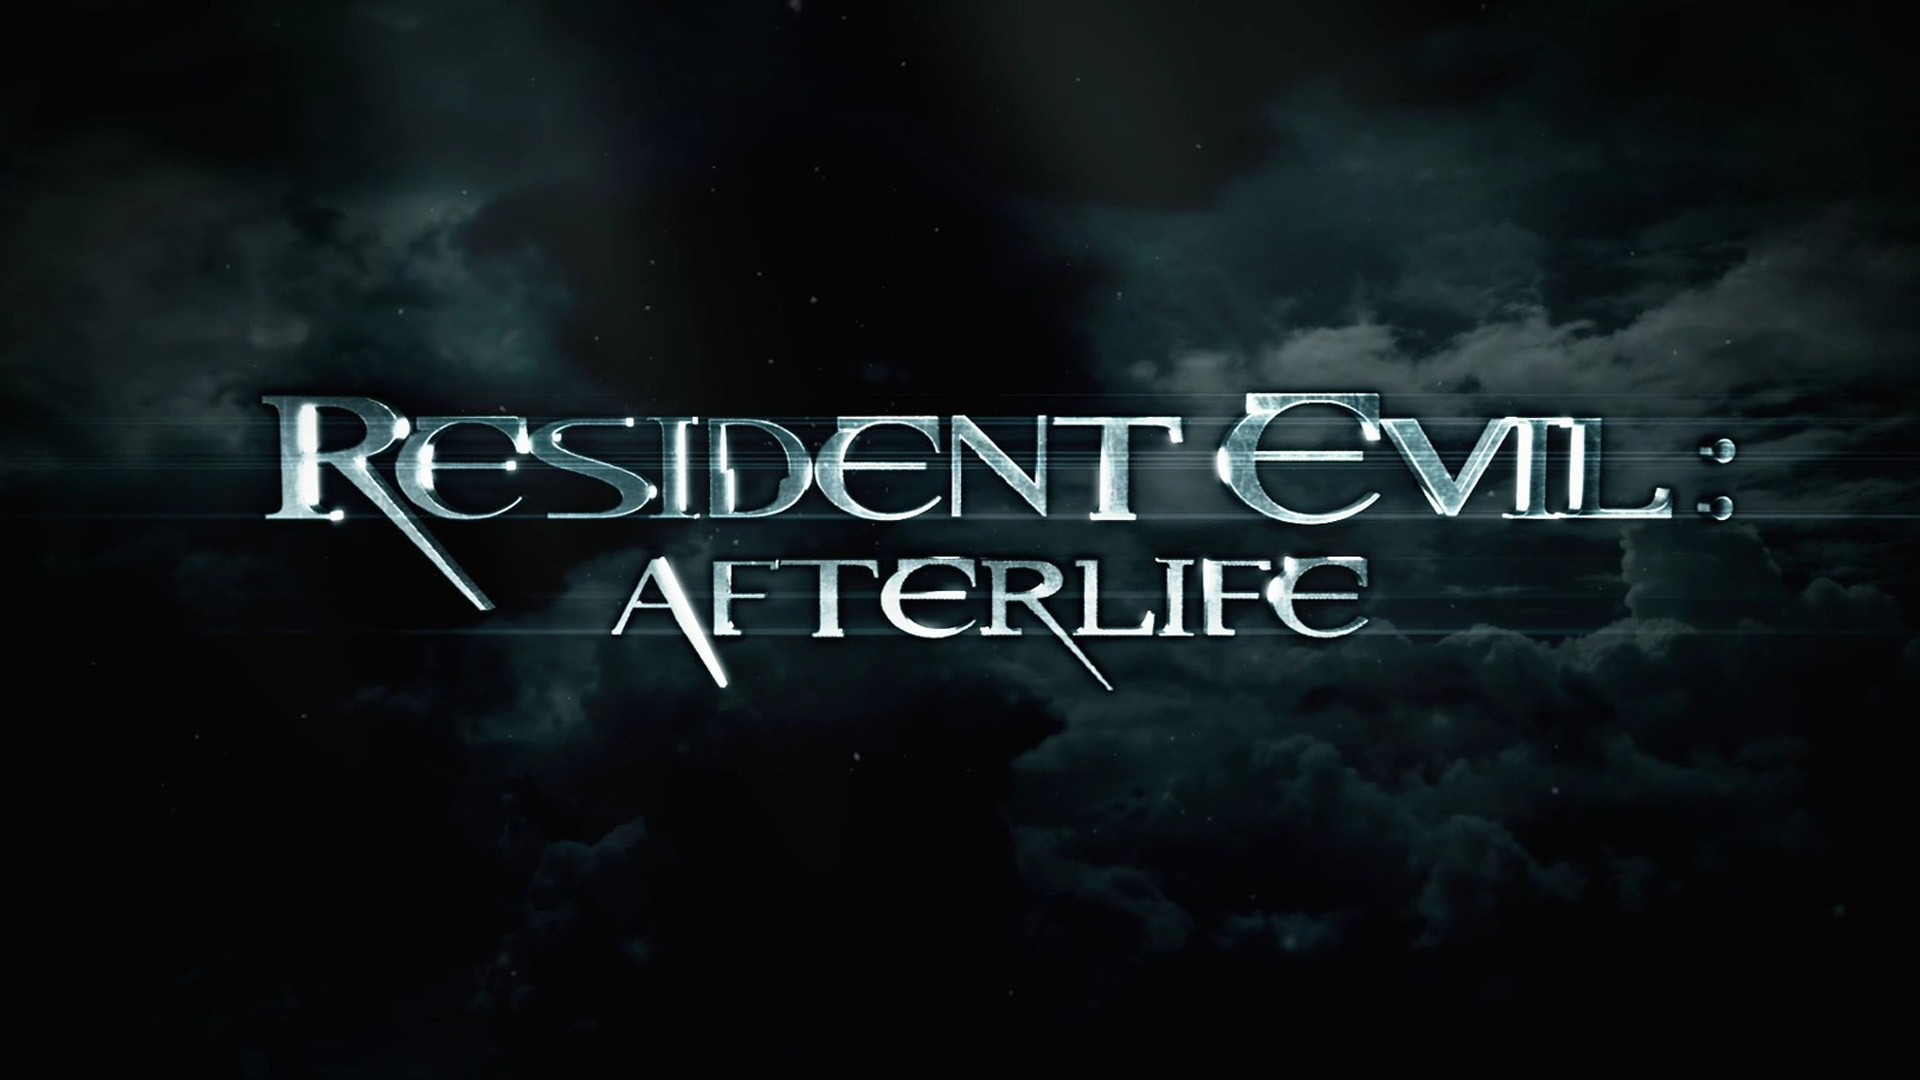 Resident Evil HD Wallpaper (78+ pictures)